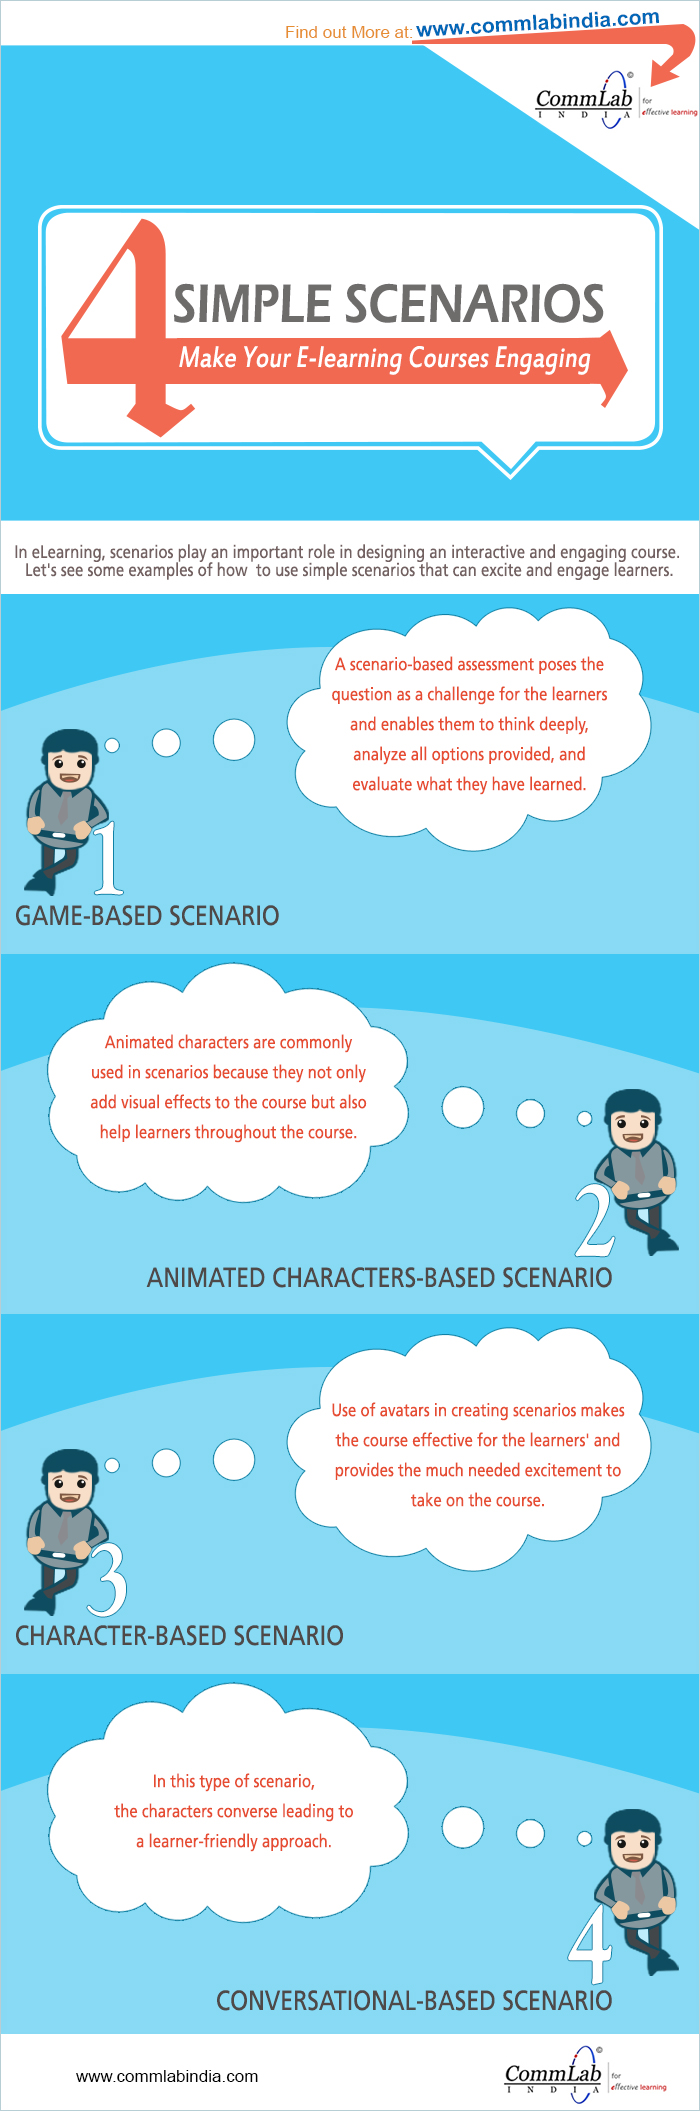 Scenarios to Make Your E-learning Courses Engaging – An Infographic